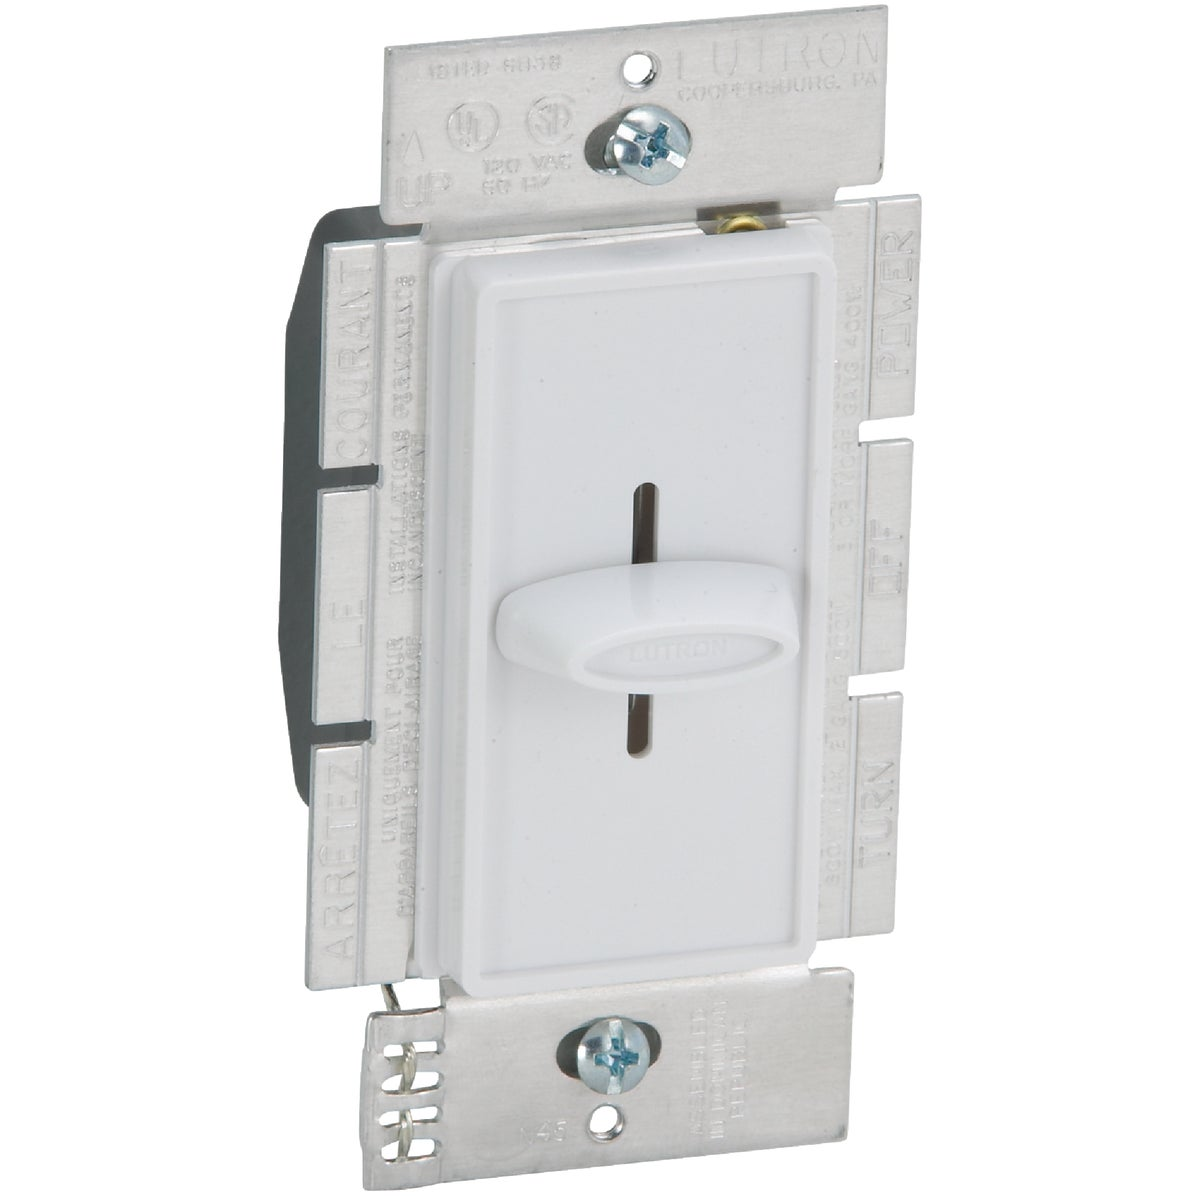 WHITE SLIDE DIMMER - S-600H-WH by Lutron Elect Co Inc